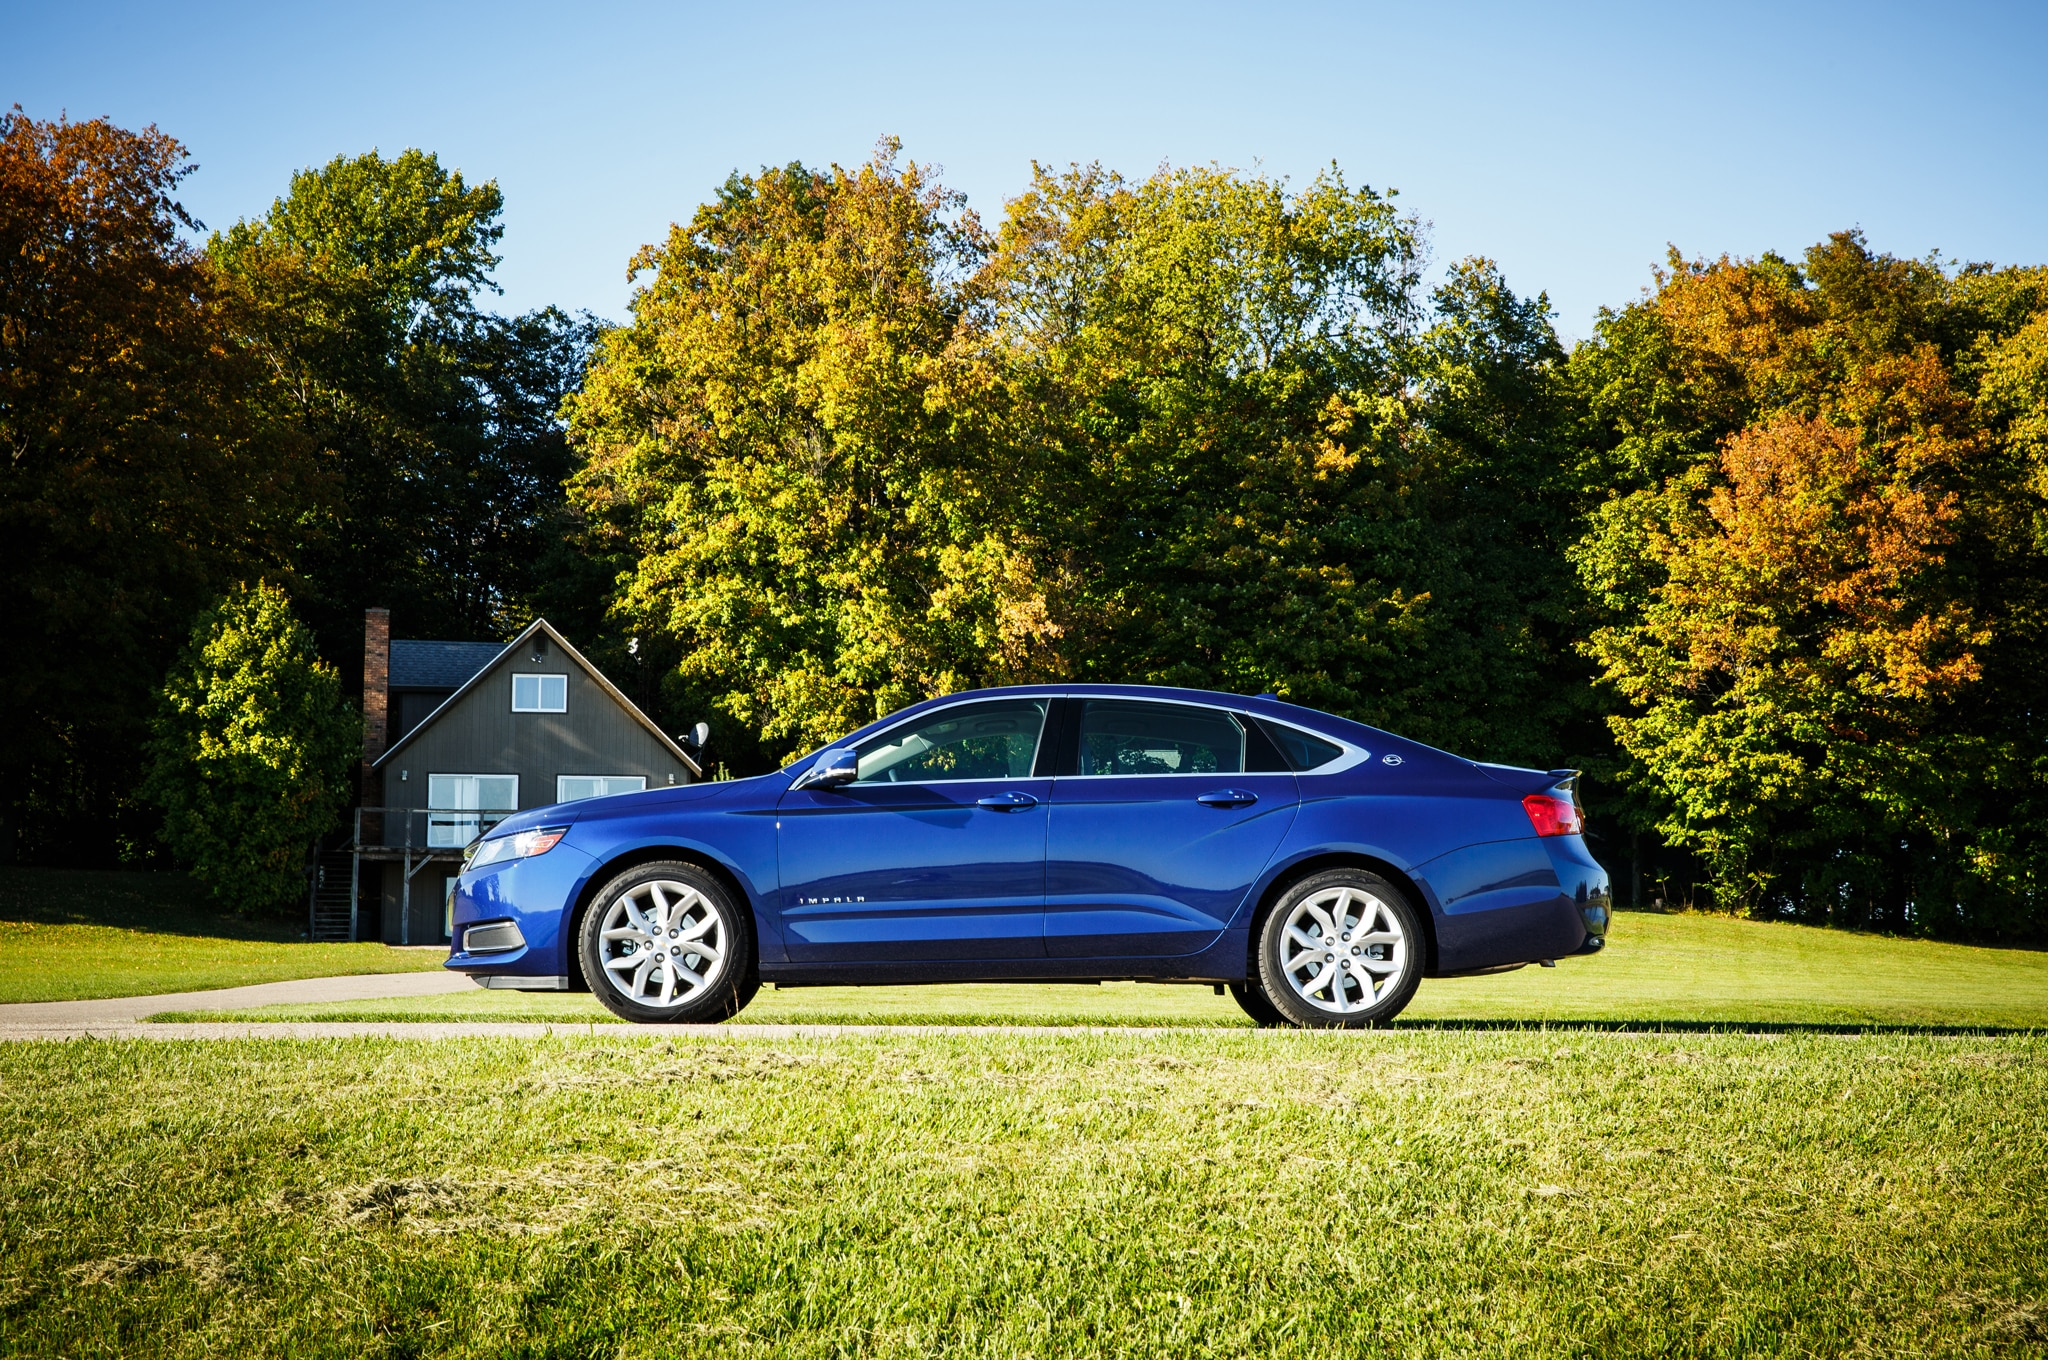 2014 Chevrolet Impala Automobile Of The Year Contender 21